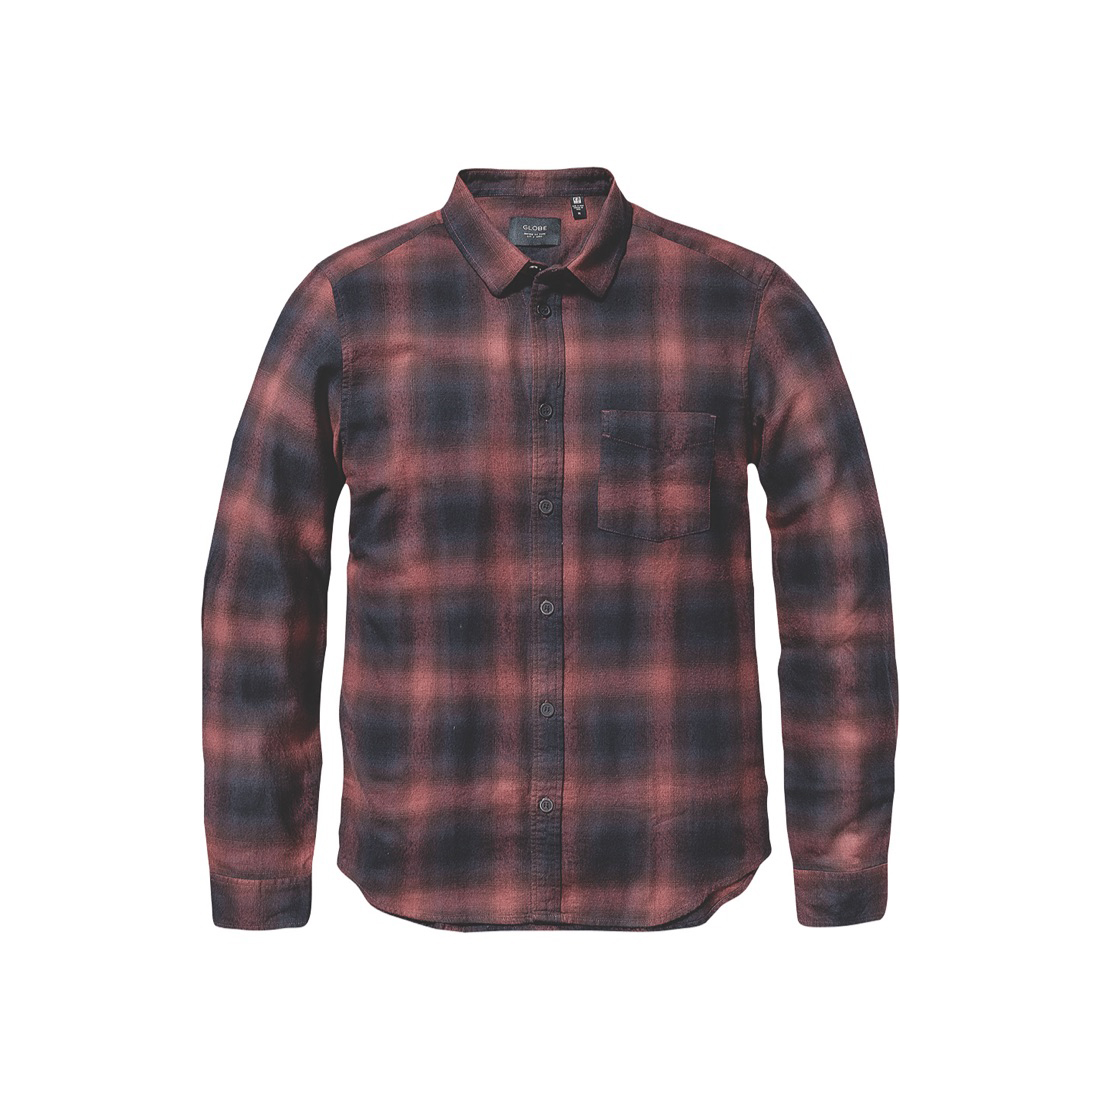 GLOBE Exchange Mens Shirt